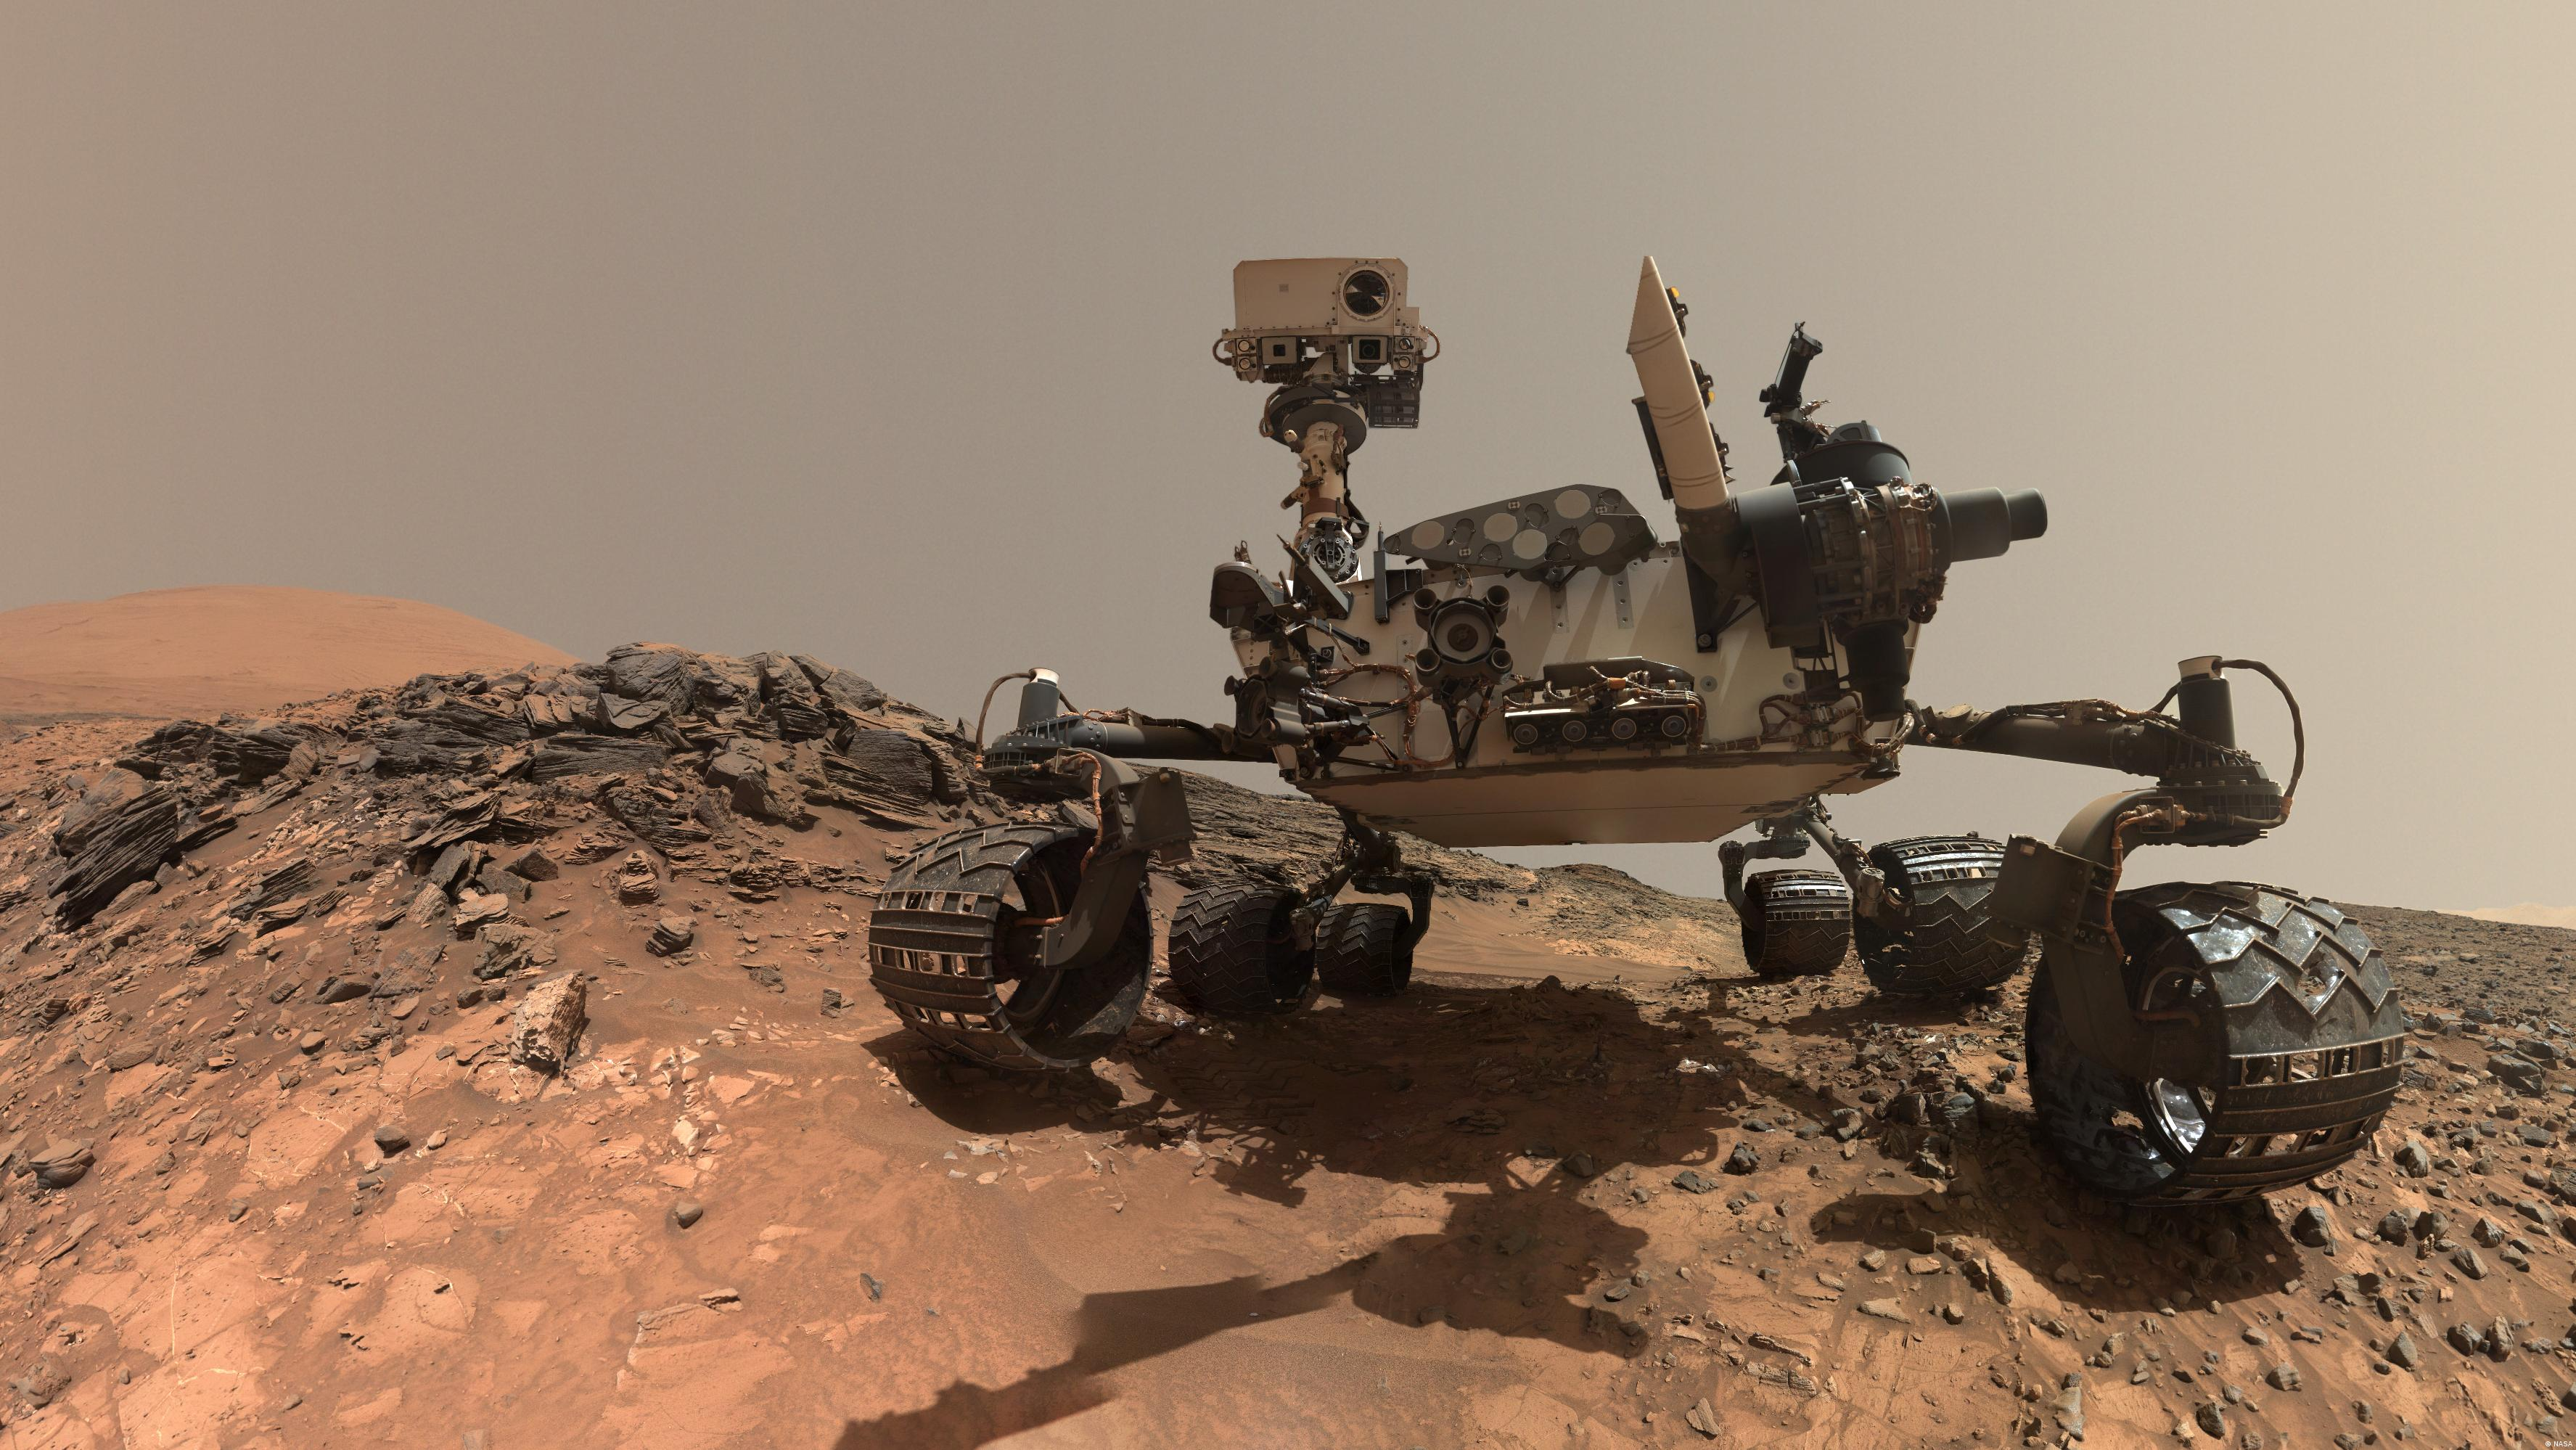 curiosity rover launch - HD 1136×852